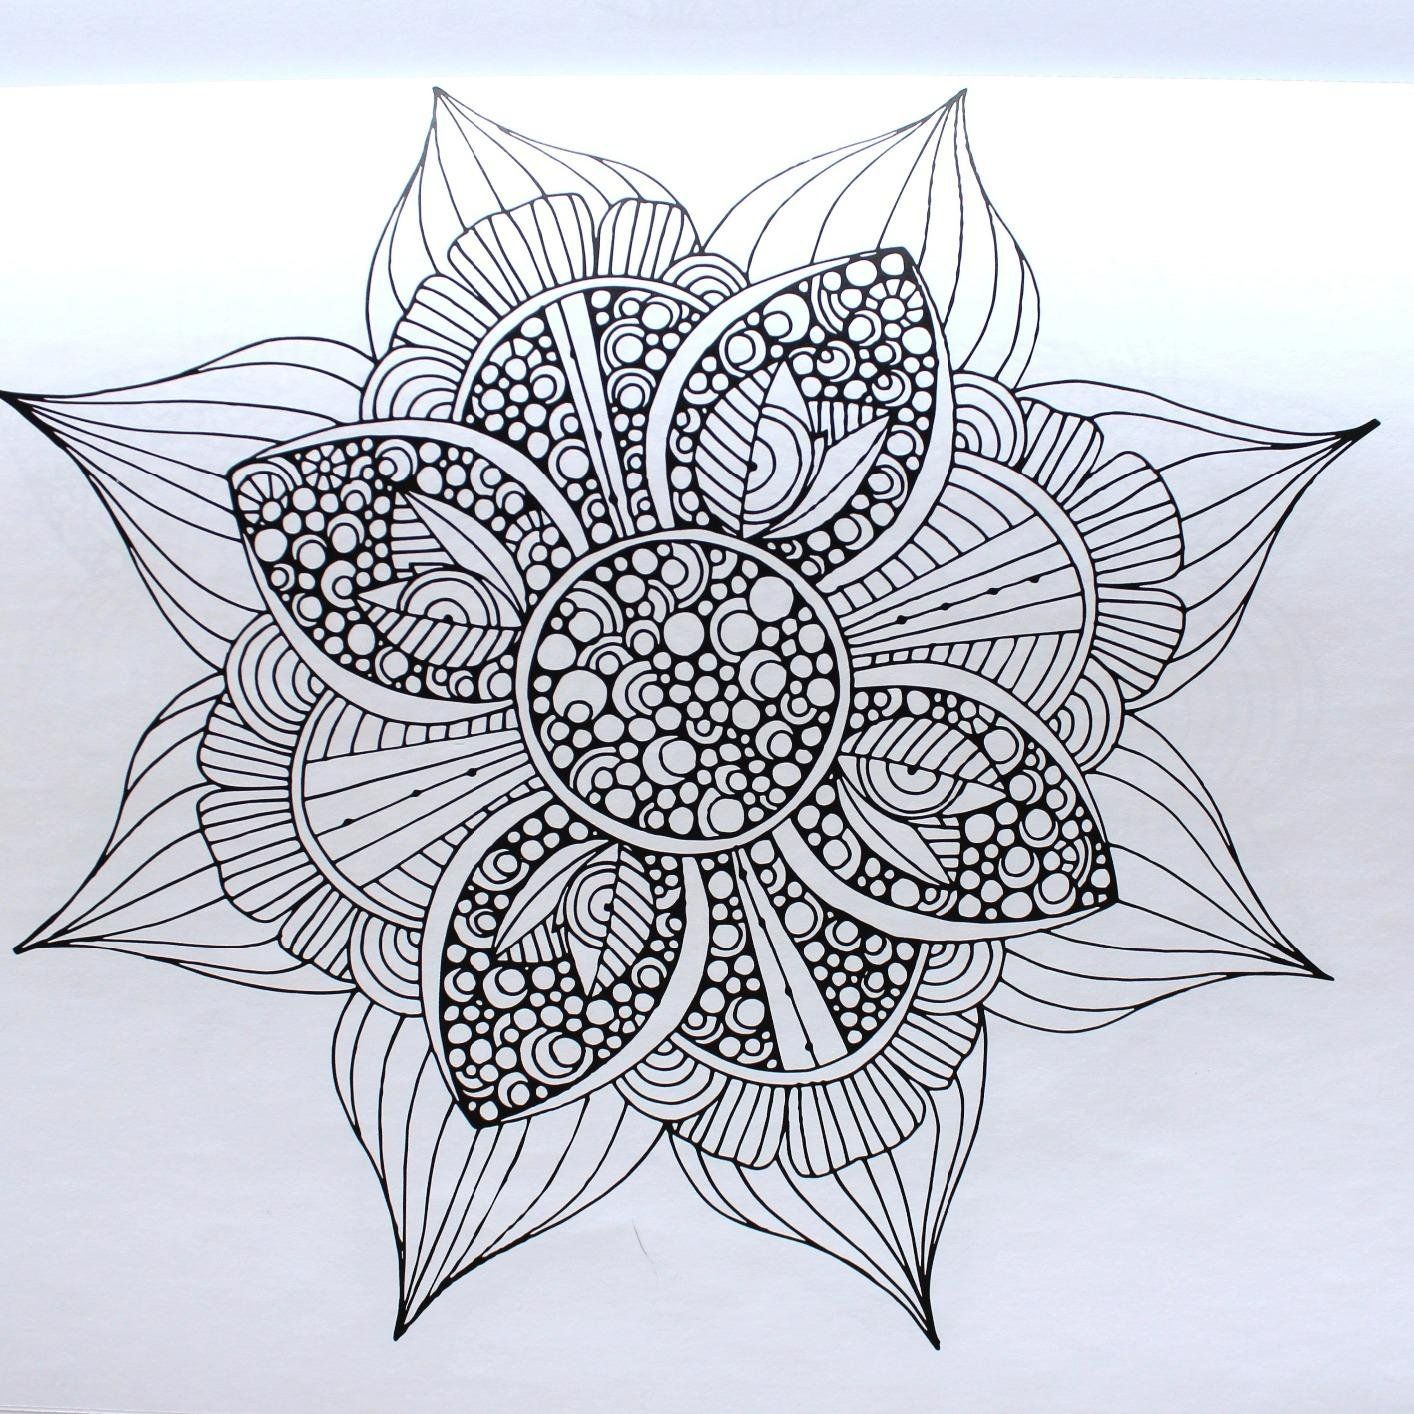 Creative Coloring Mandalas: Art Activity Pages to Relax ...